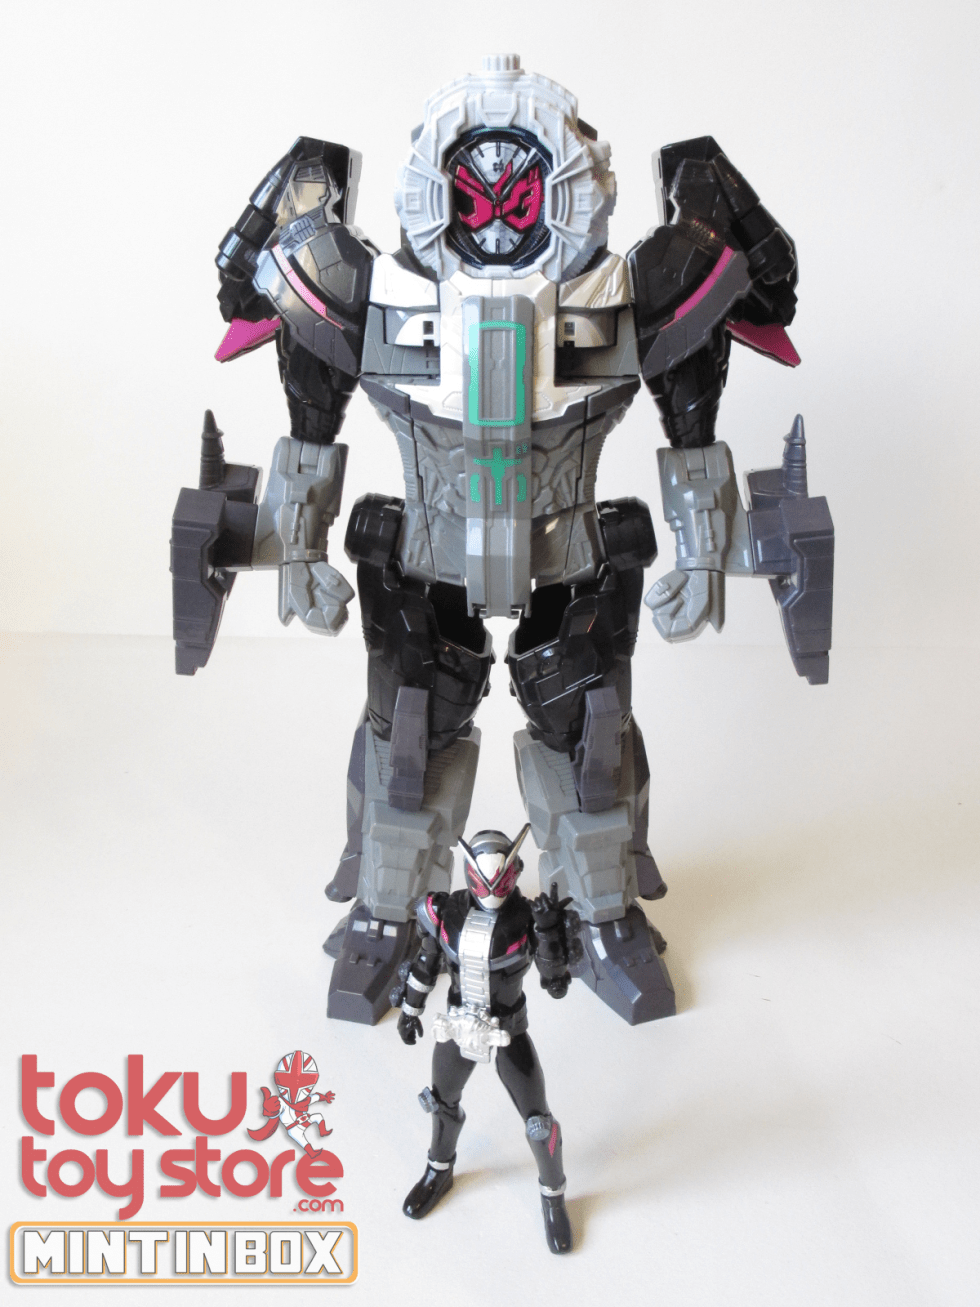 RKF_DX Time Mazine_Toku Toy Store (2)